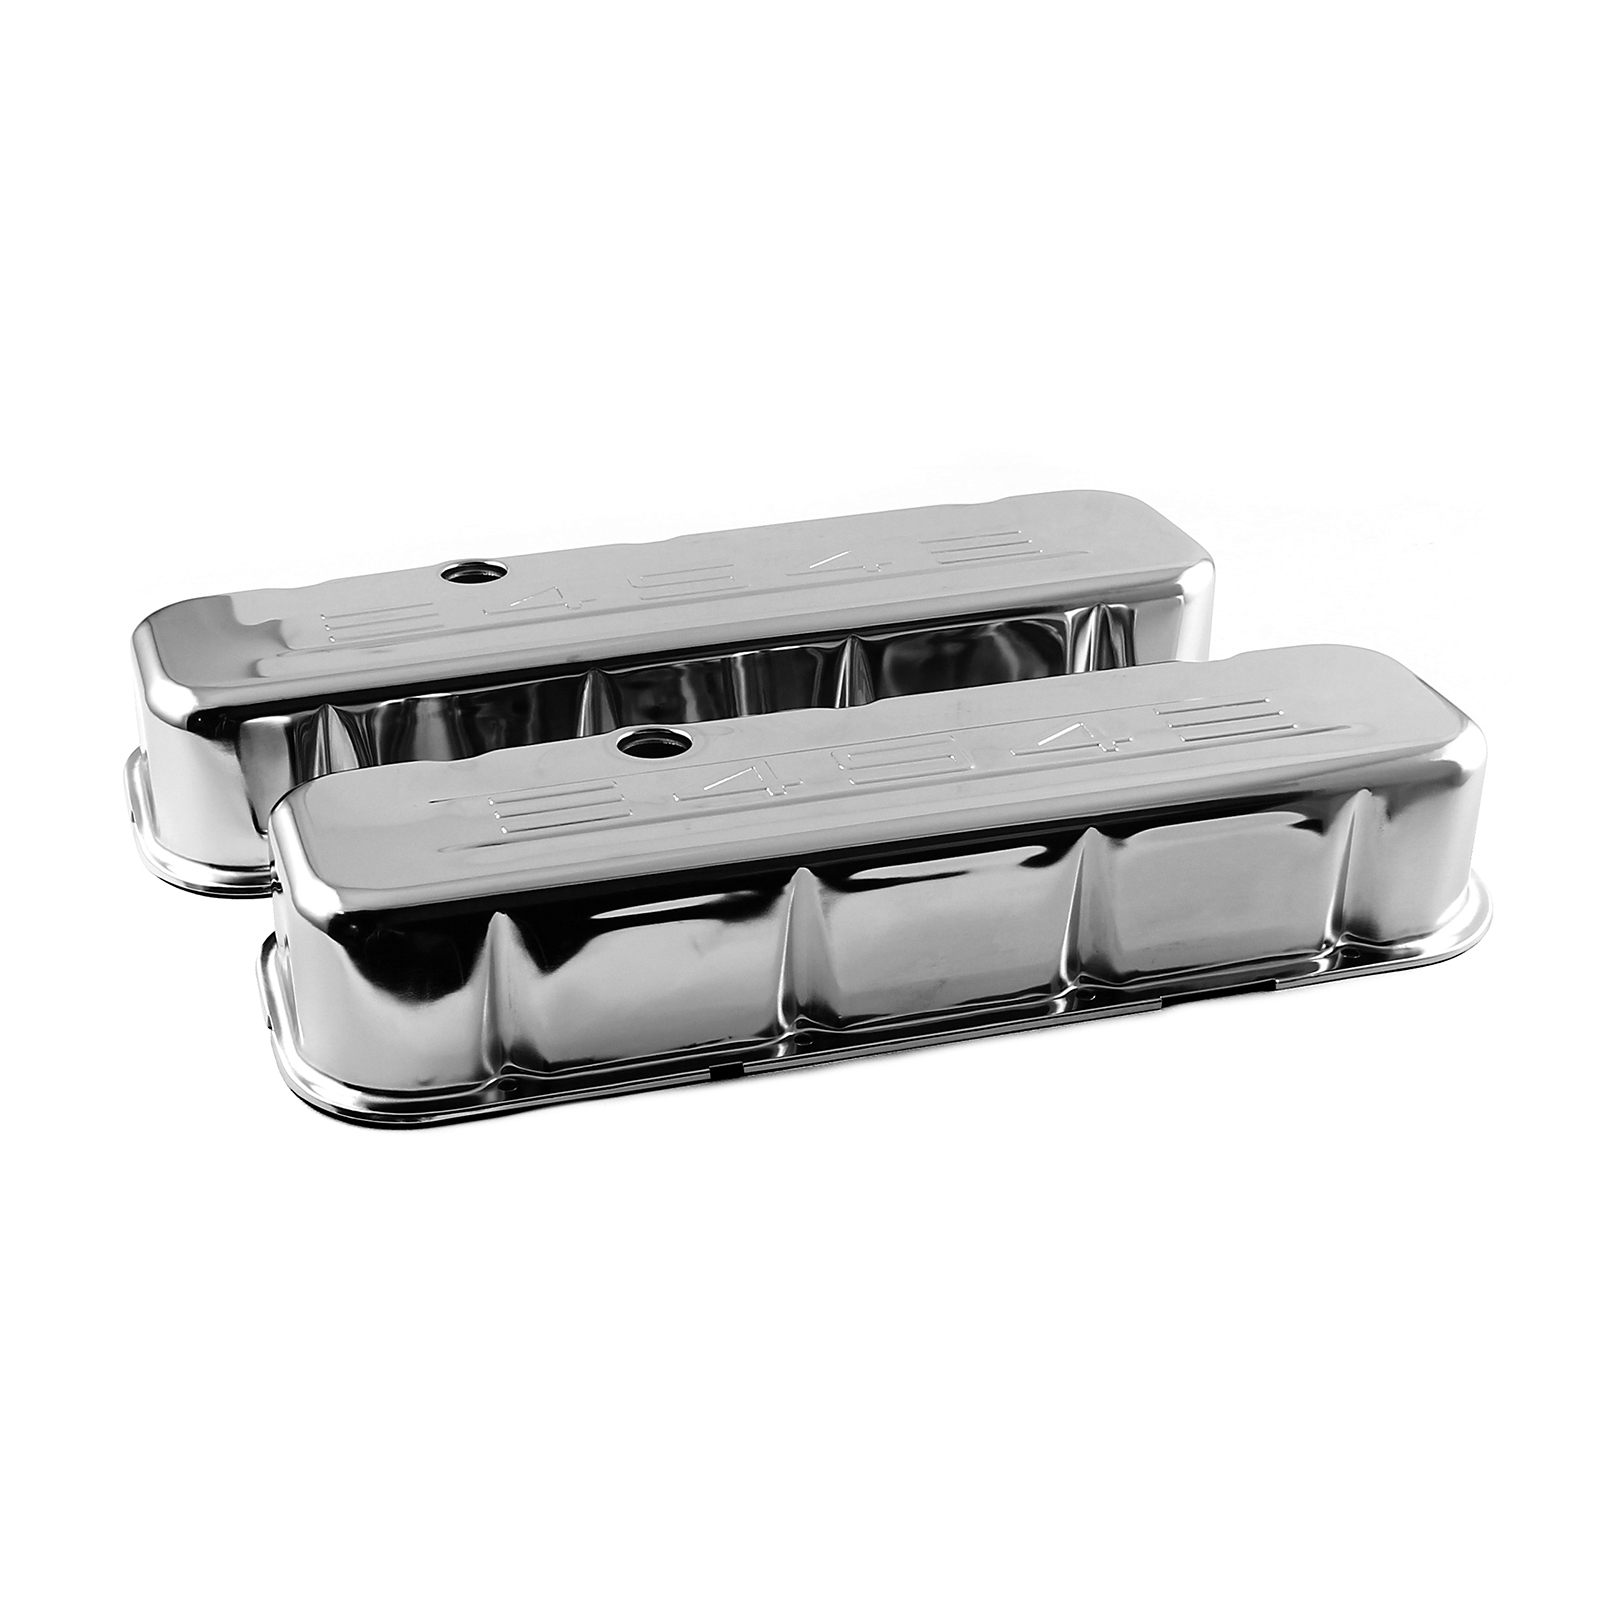 "Chevy BBC 454 Chrome ""454 Stamped"" Steel Valve Covers - Tall w/ Baffled Hole"